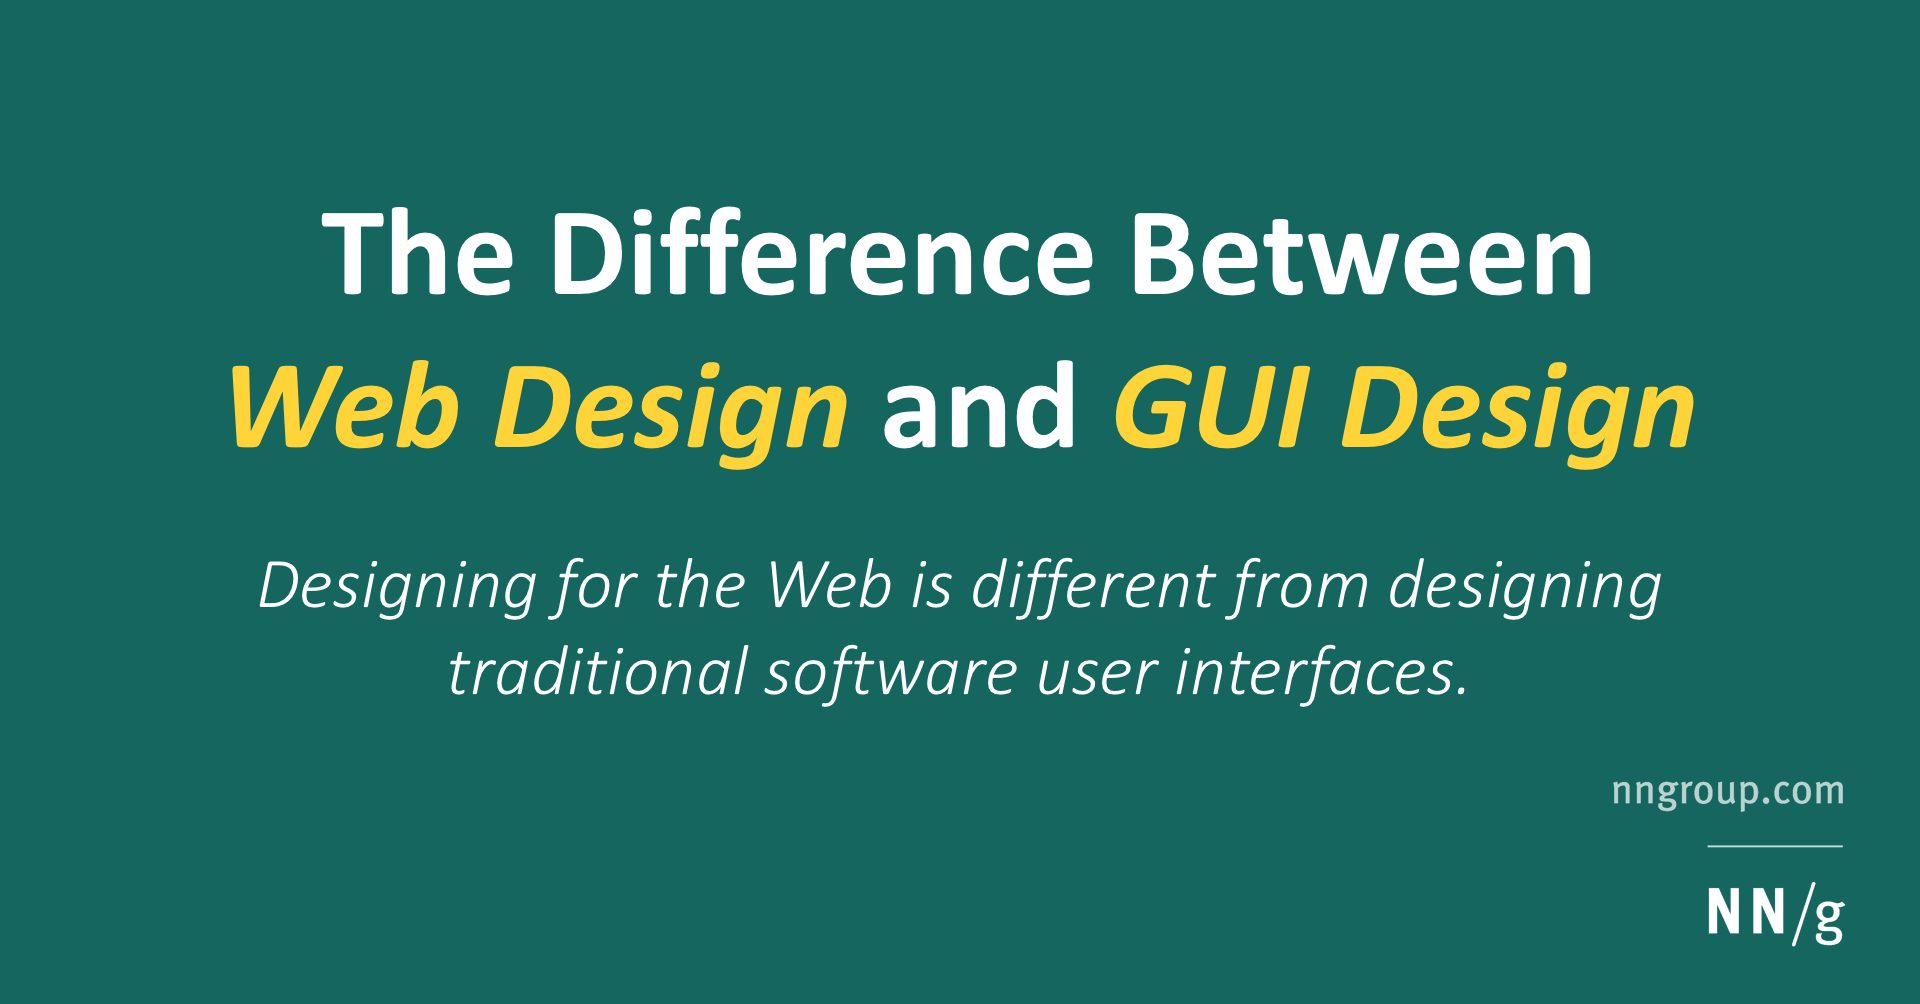 The Difference Between Web Design and GUI Design